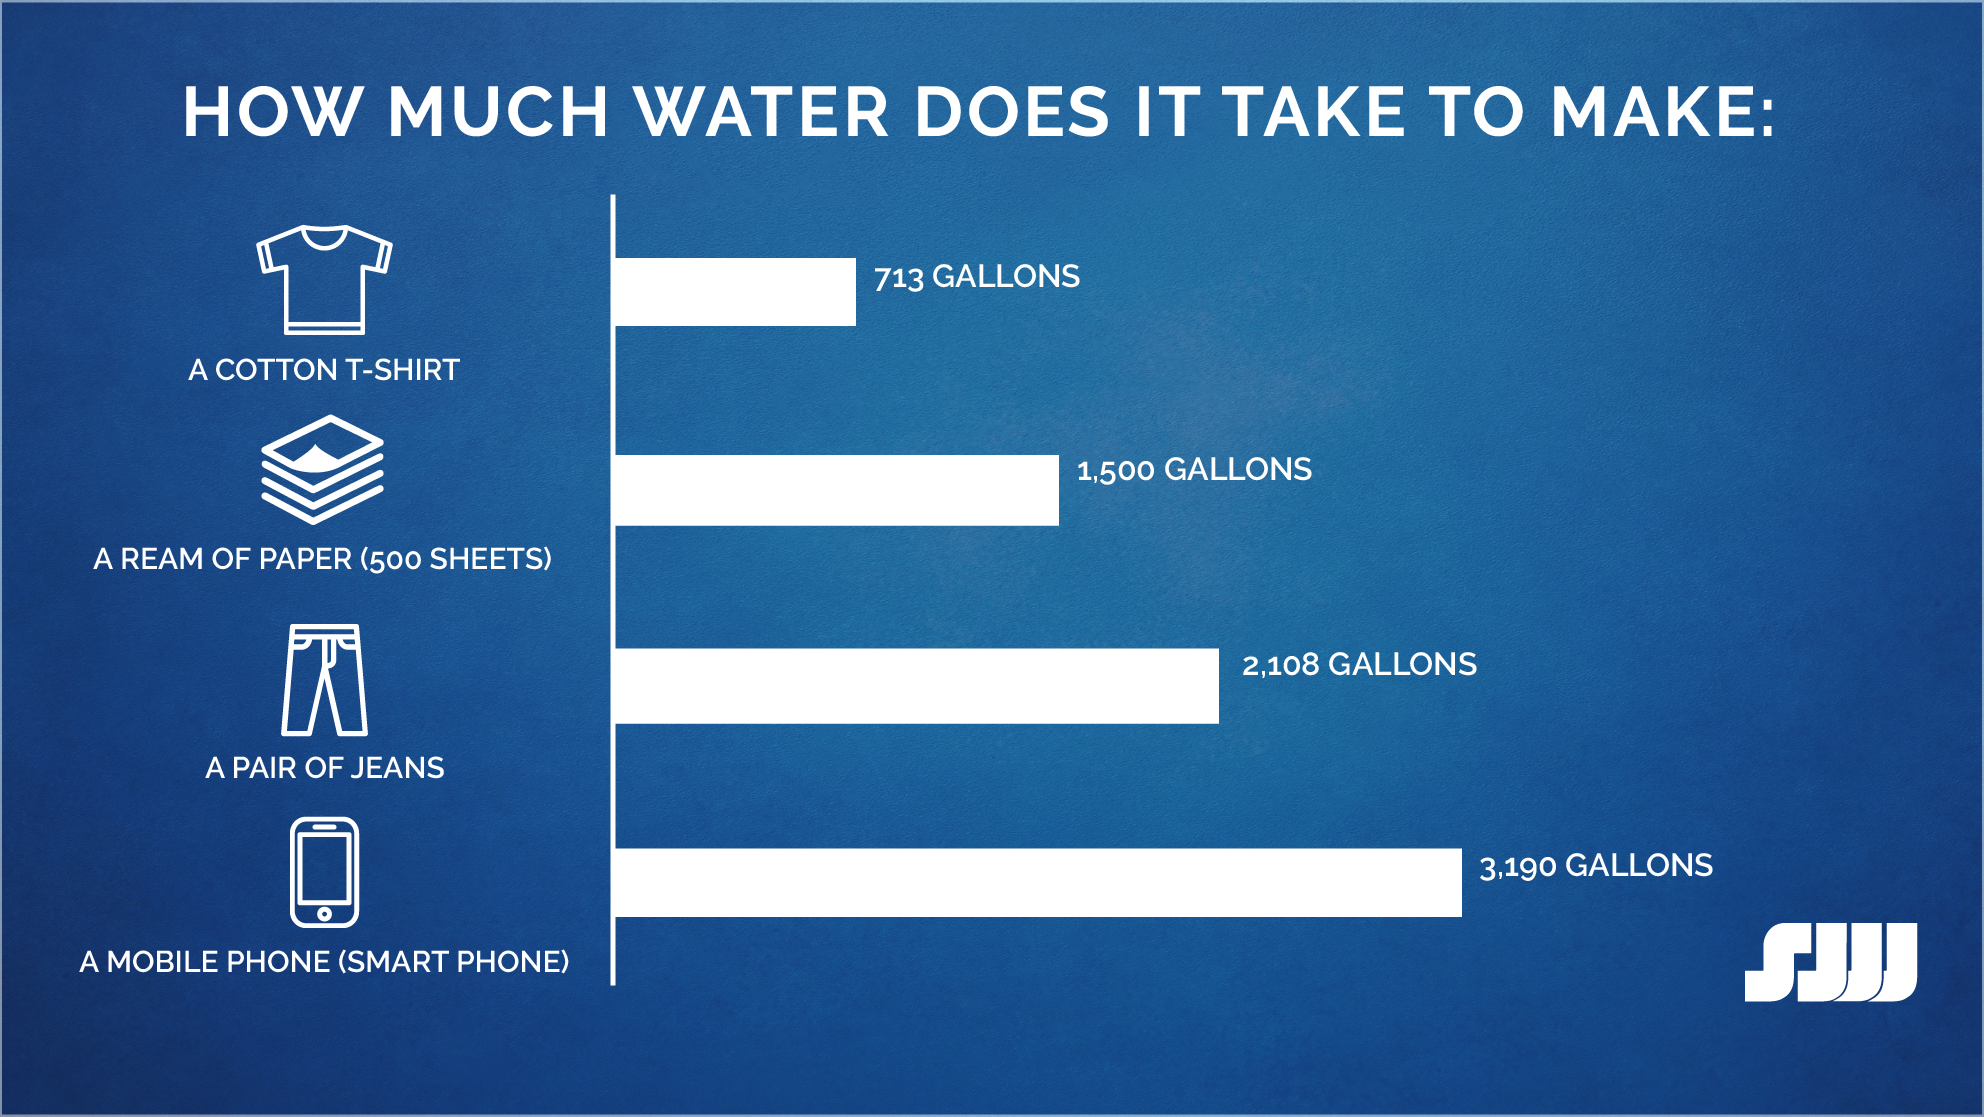 Graph of amounts of water it takes to make different items (2)